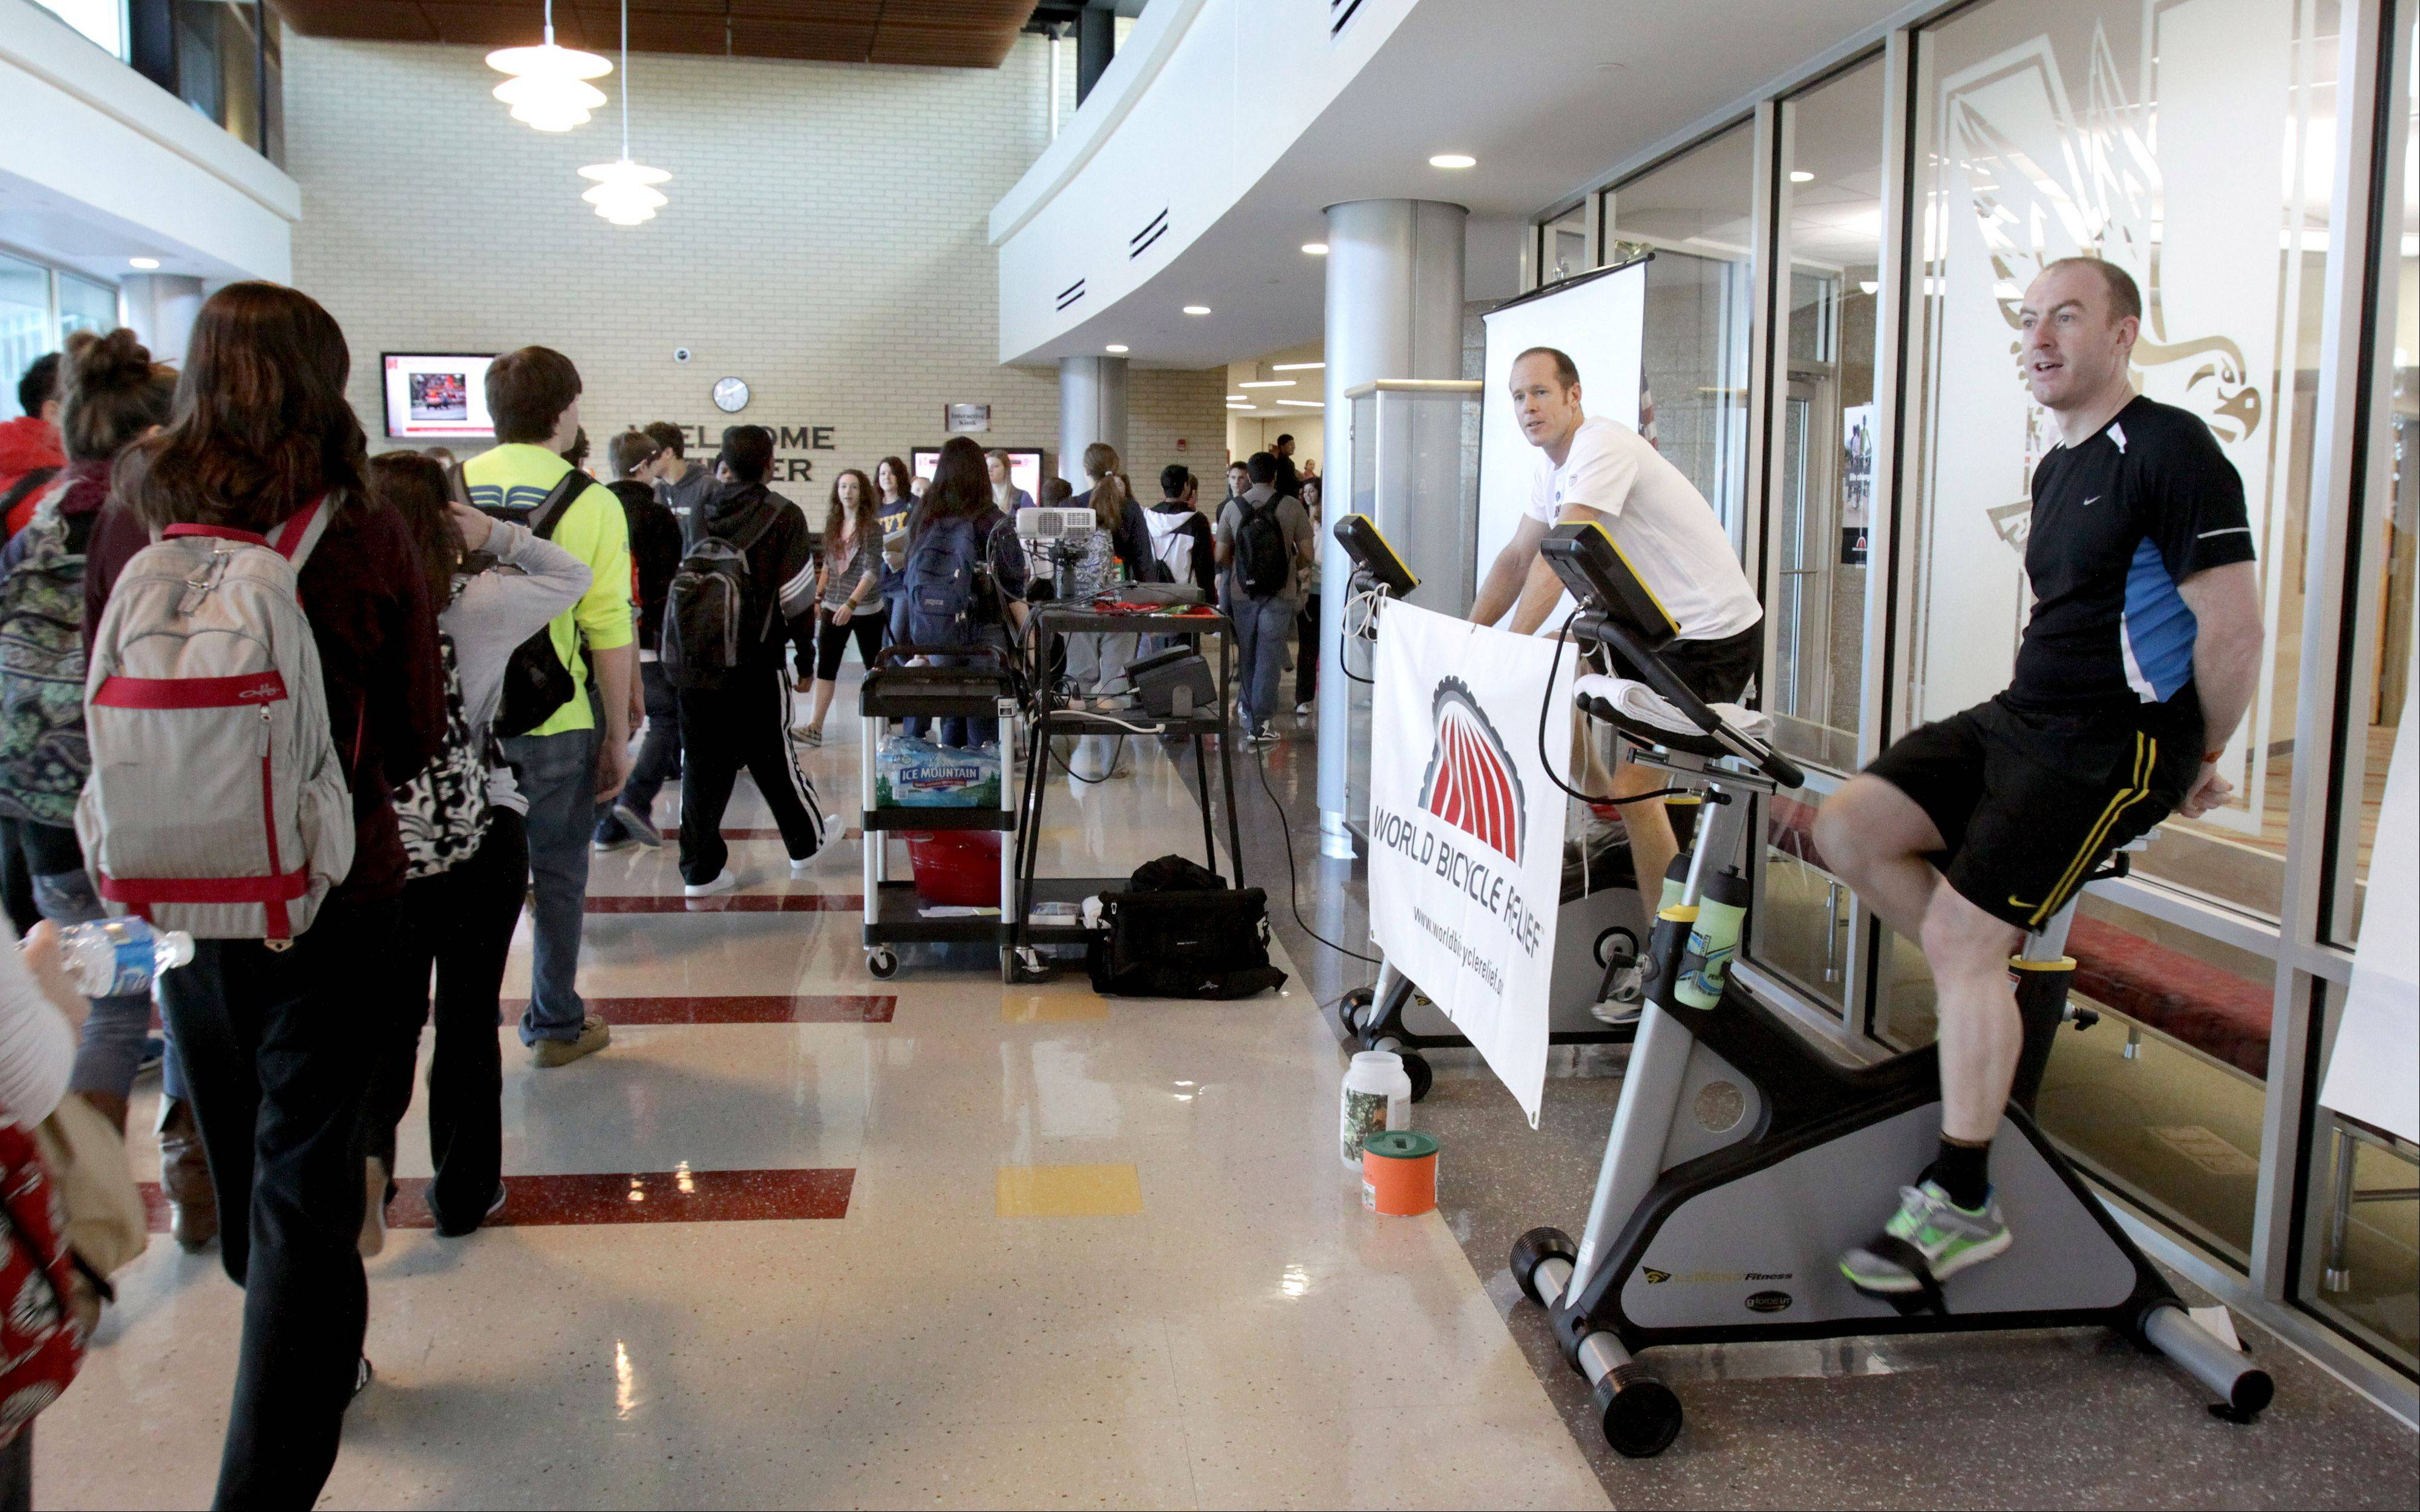 Teachers Neil Duncan, left, and Marc O'Shea pedal stationary bikes Friday at Naperville Central High School to raise money for World Bicycle Relief.